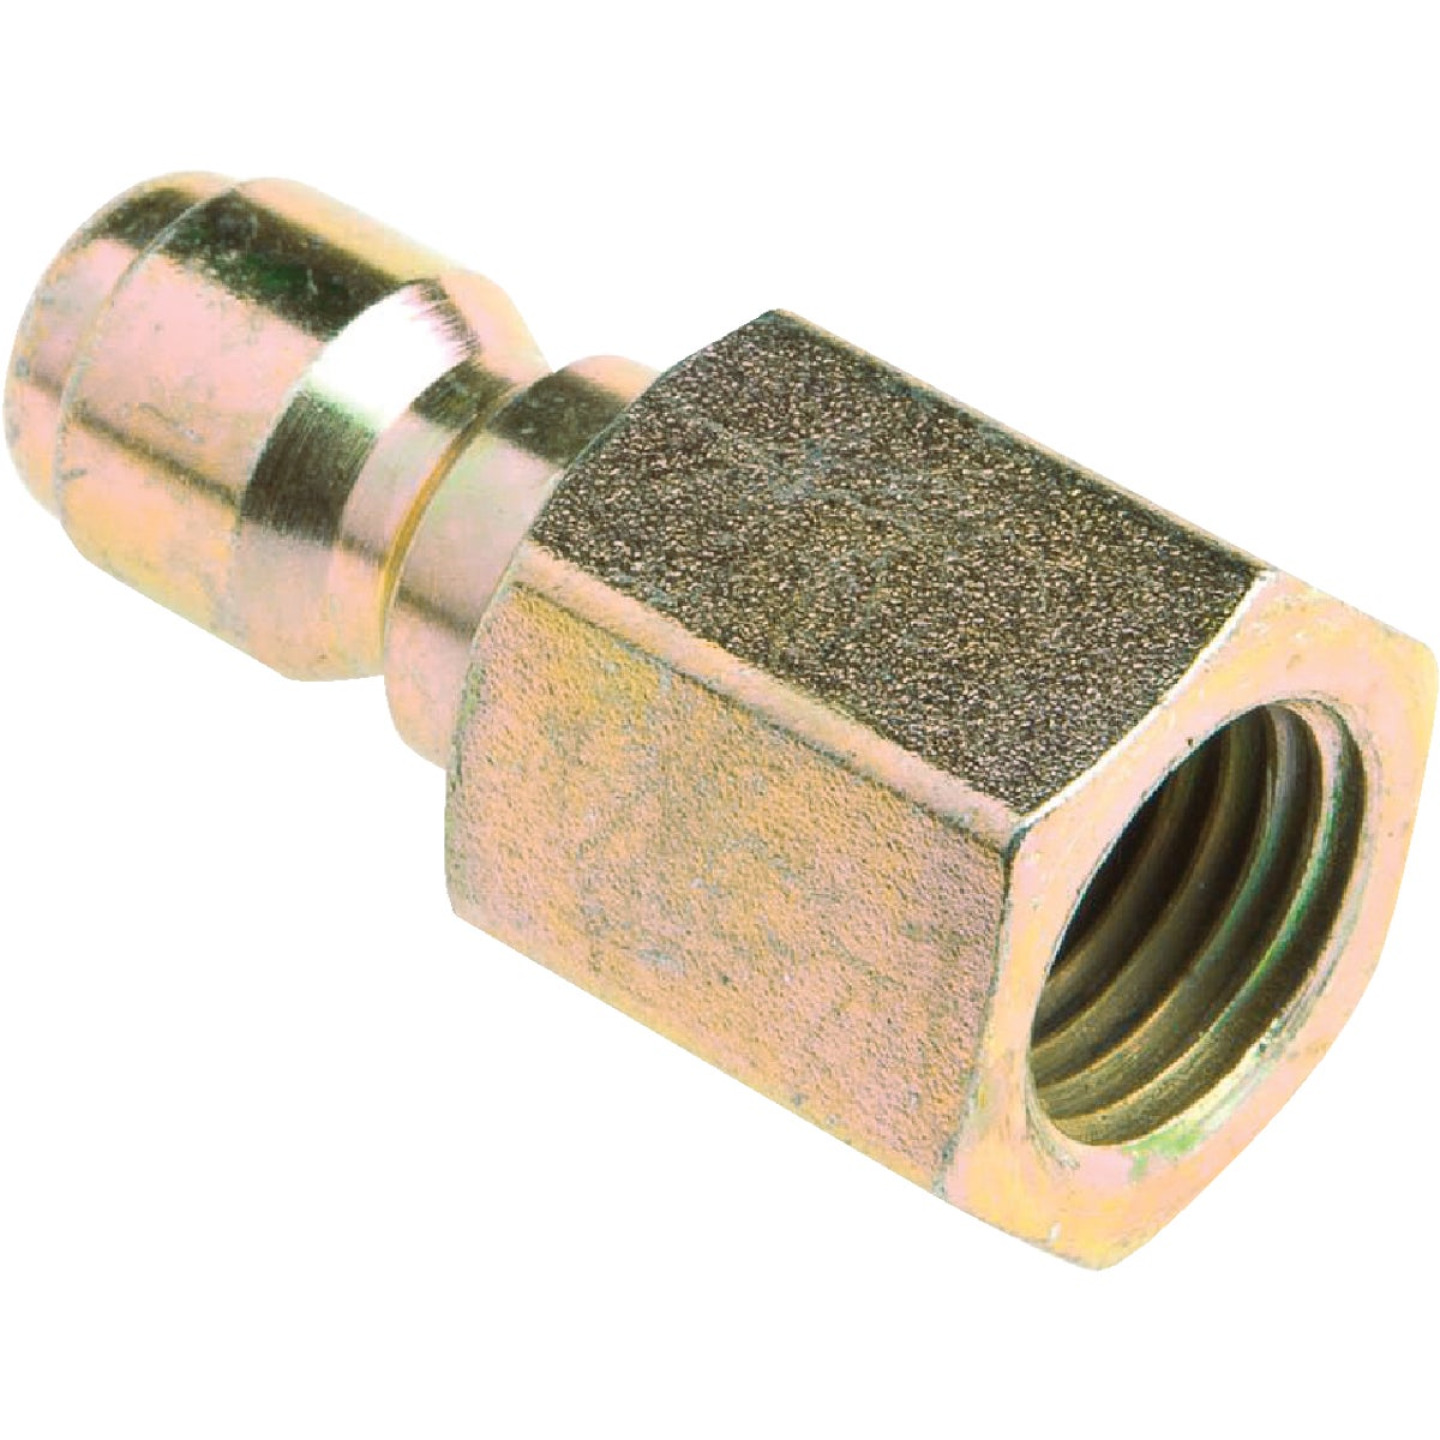 Forney 1/4 In. Female Quick Connect Pressure Washer Plug Image 3